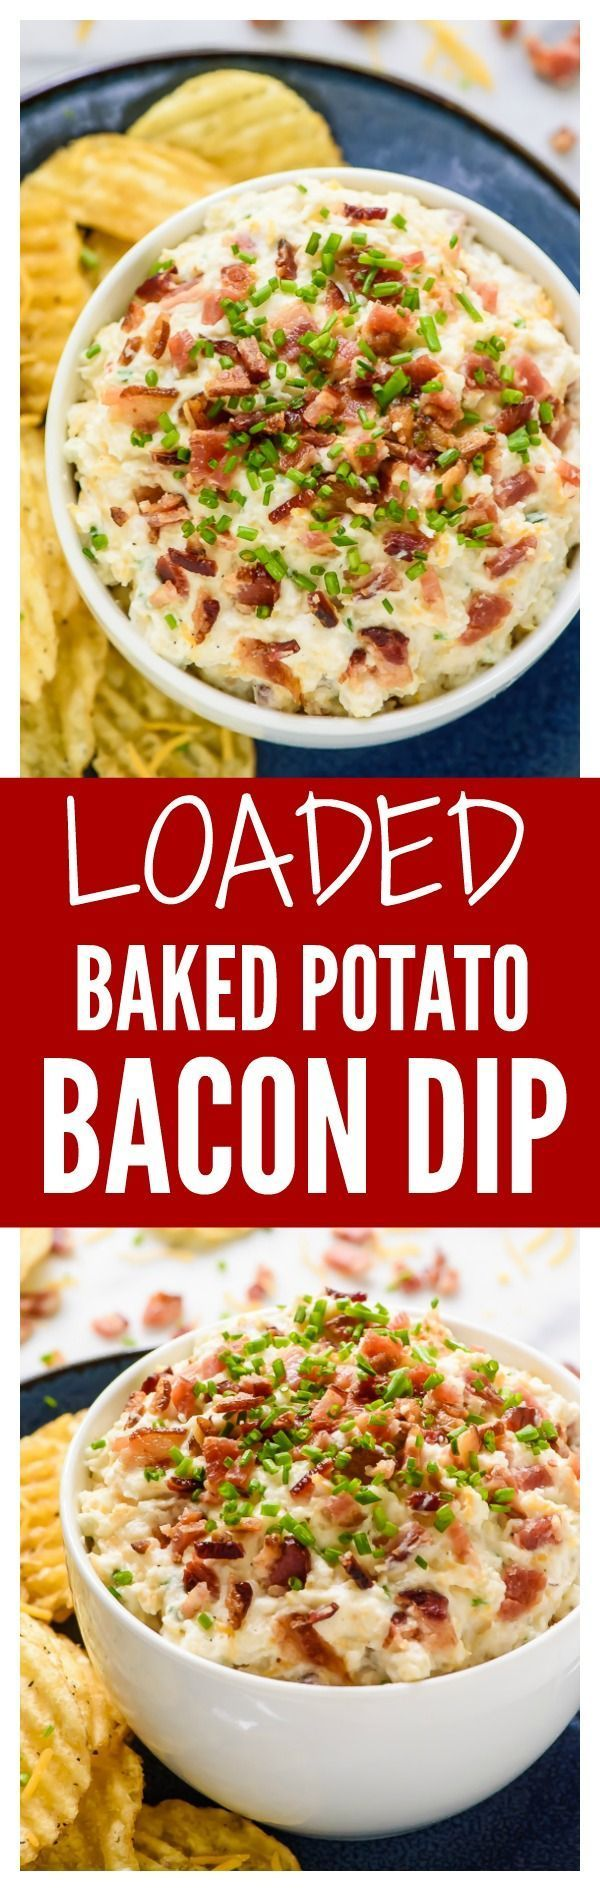 No one will be able to stop eating this Loaded Baked Potato Dip with bacon, sour cream, and all the fixin's! Lightened up with Greek yogurt, but no one will ever guess. Perfect super bowl recipe!